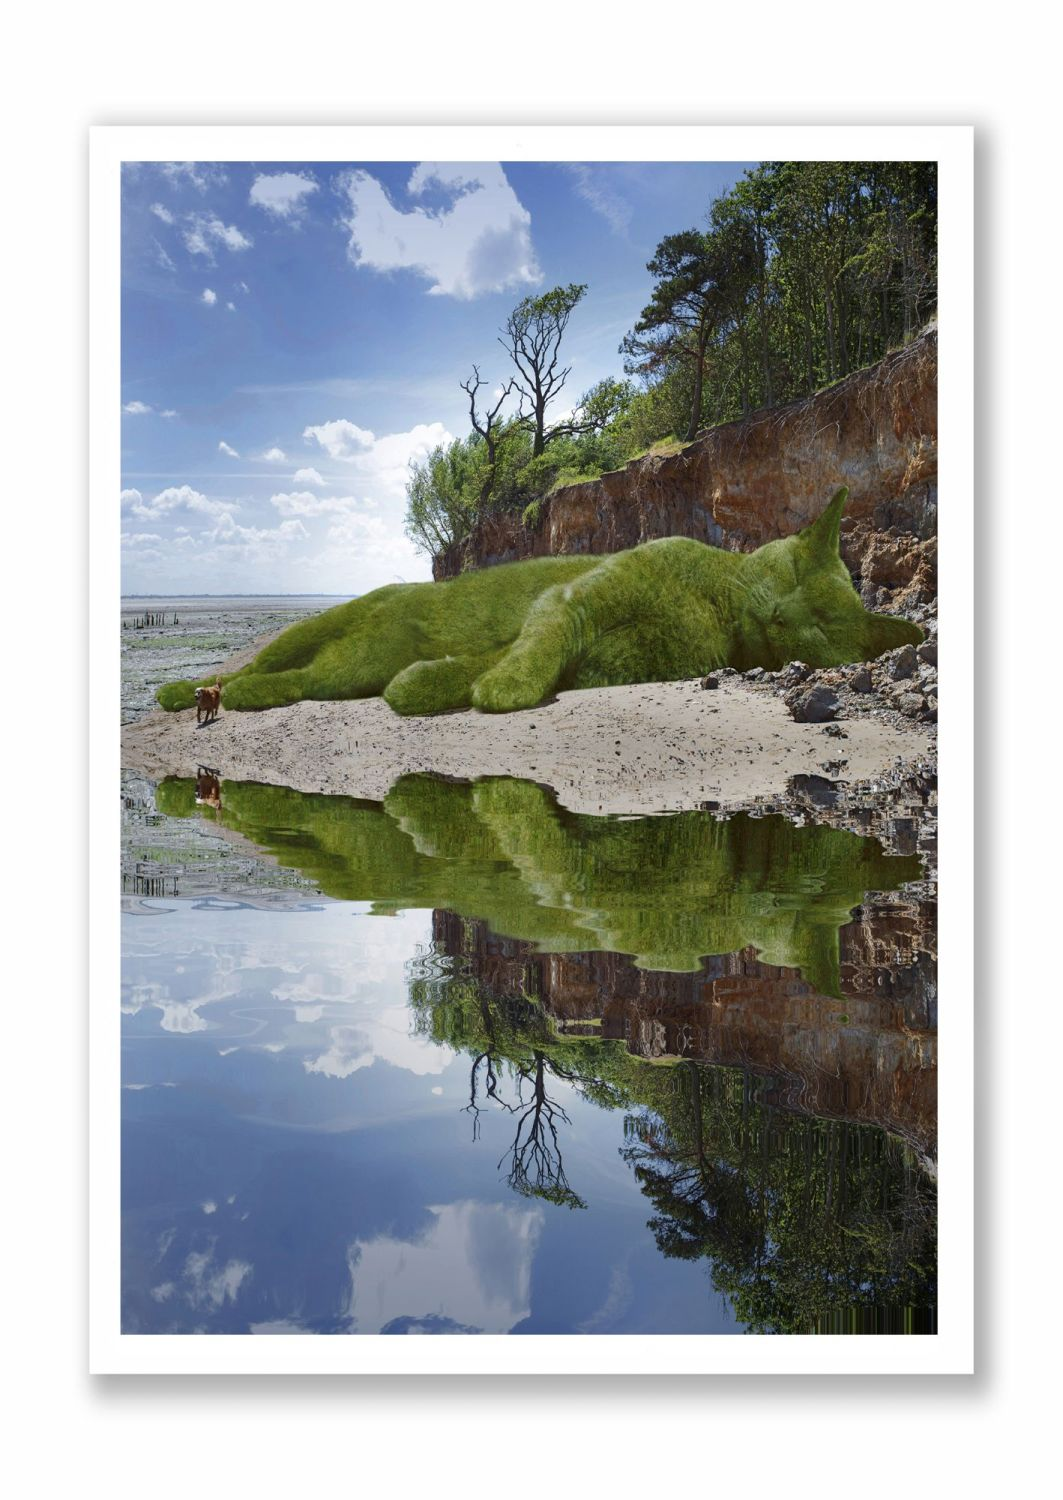 Topiary Cat - On The Beach